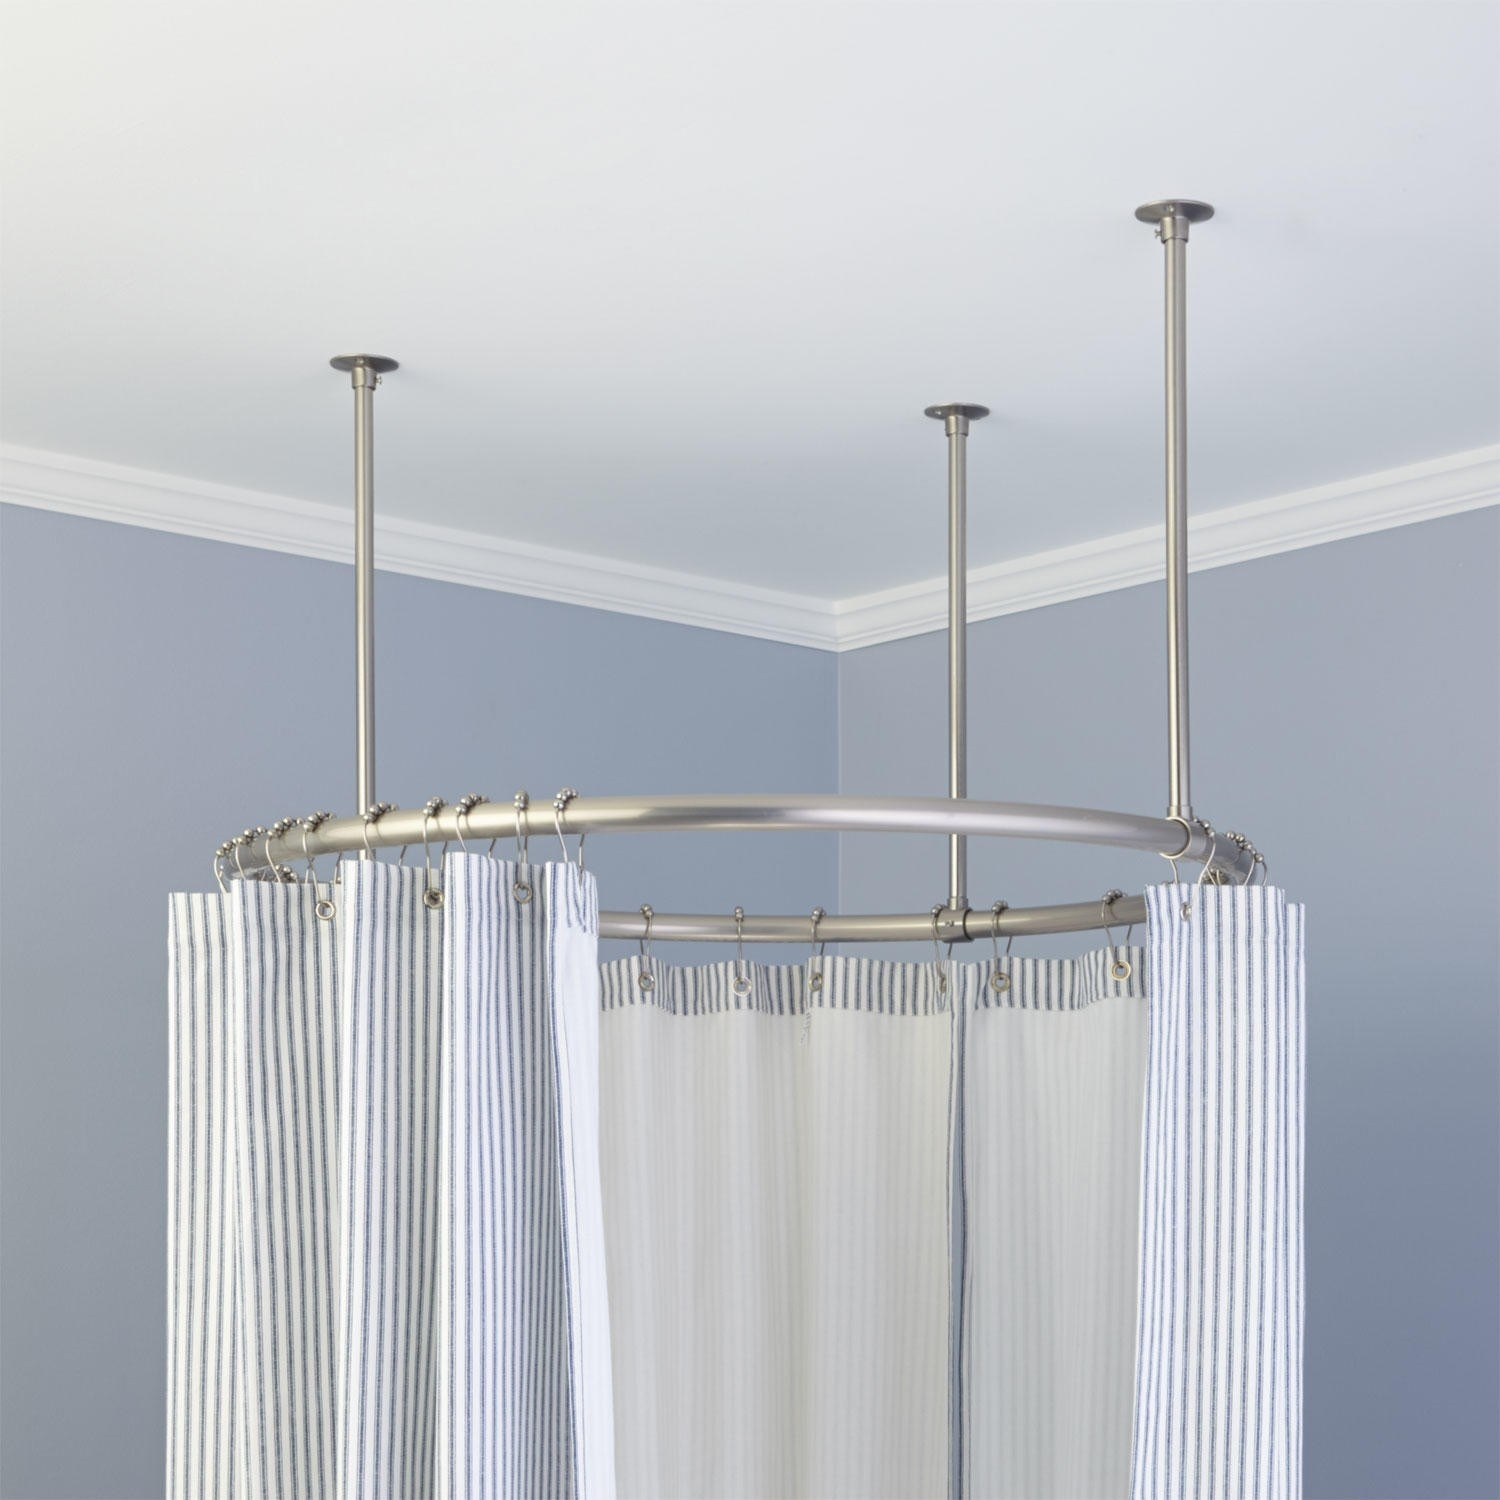 Shower Curtain Rods Signature Hardware Within L Shaped Shower Curtain Rods (Image 24 of 25)